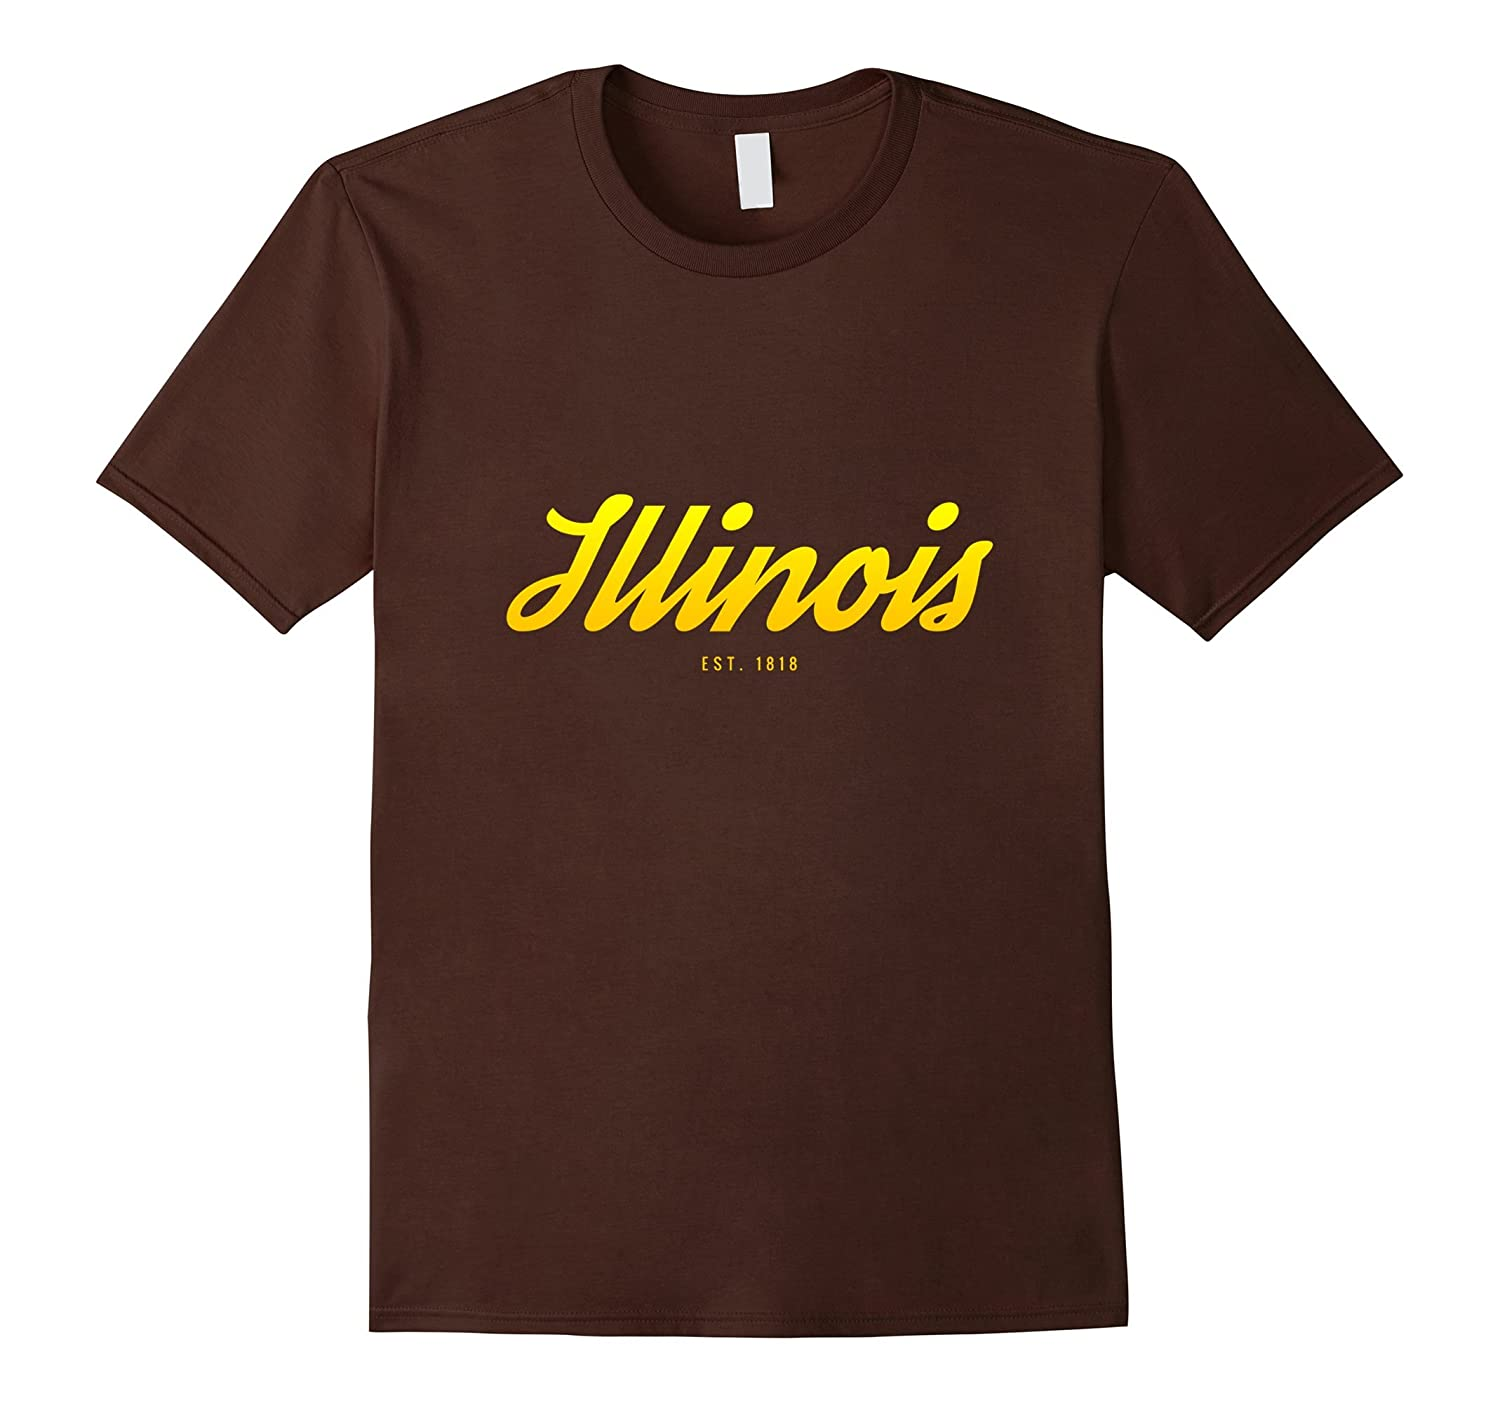 Illinois US State Est. Founded in 1818 tee shirt-T-Shirt